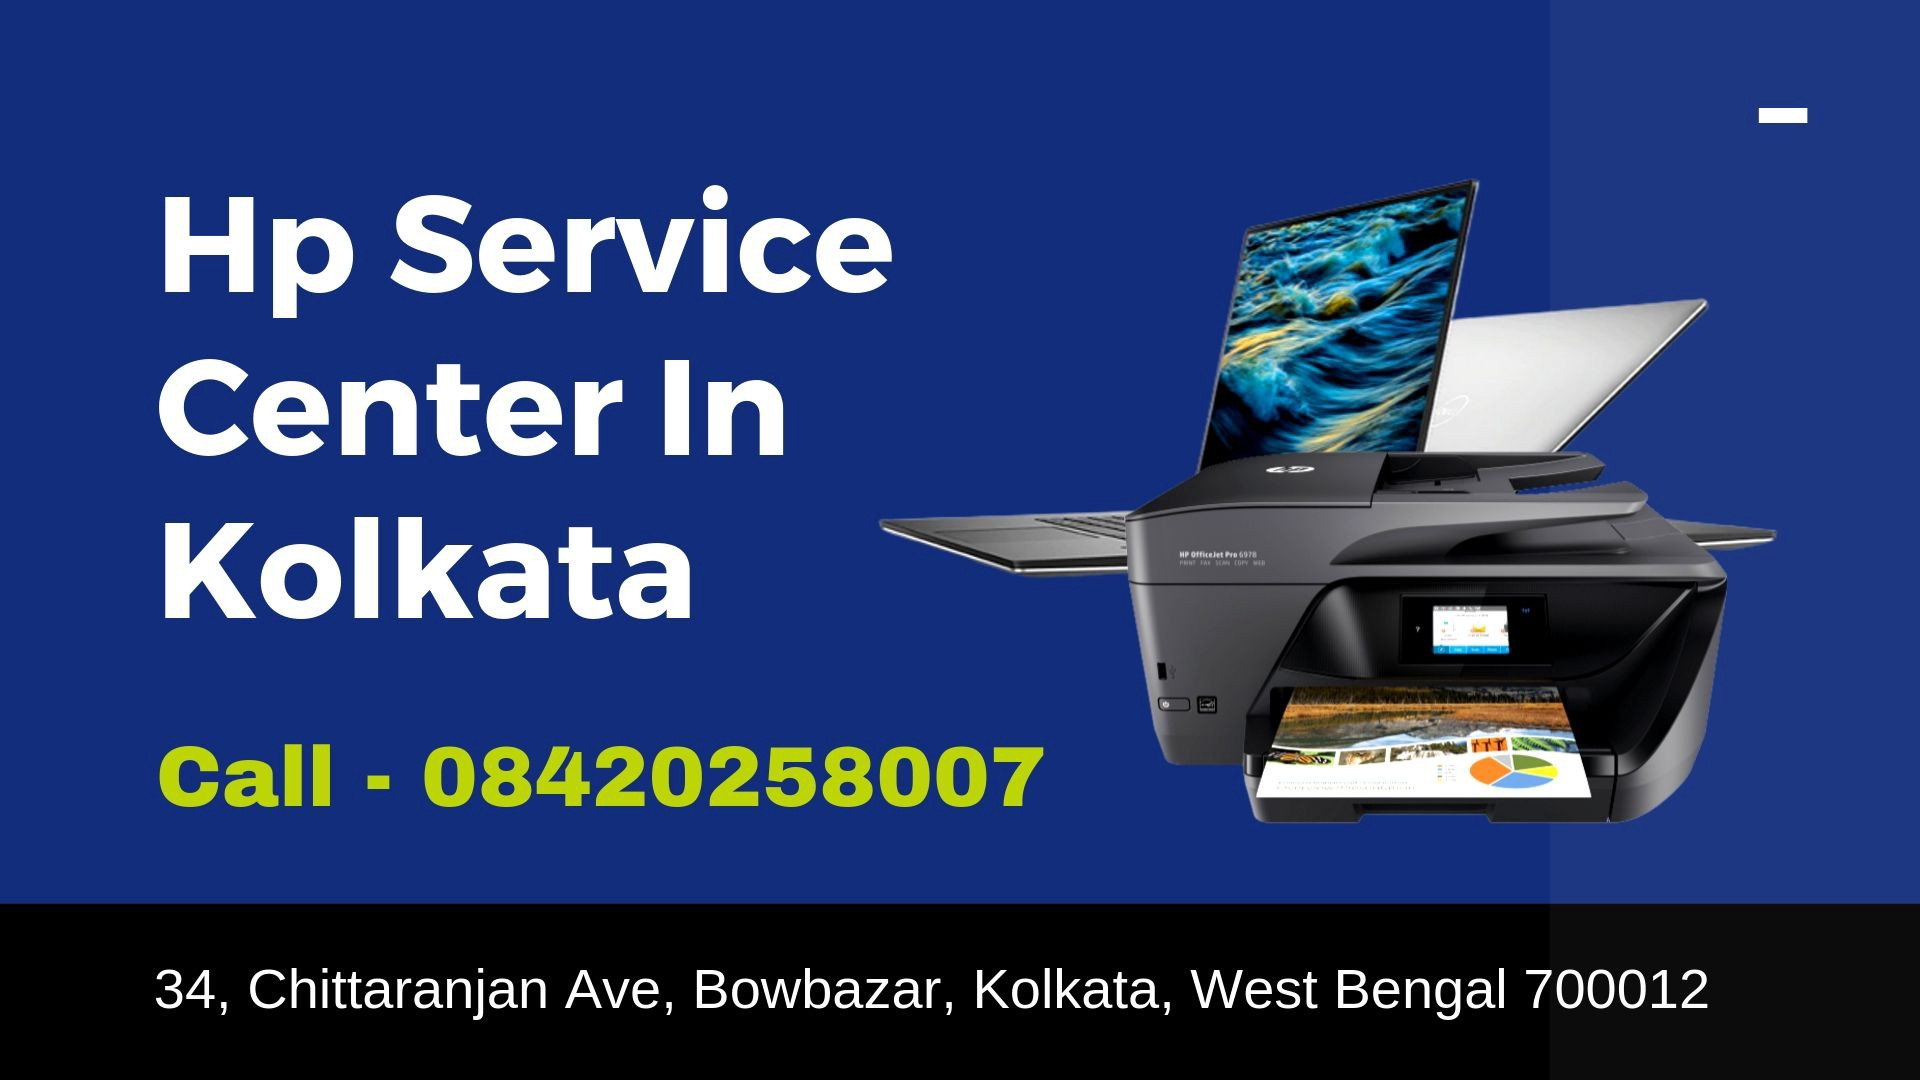 Hp Service Center In Kolkata The One Stop Service Center For Hp Laptop And Printer By Hpservicecenterinkolkata Medium